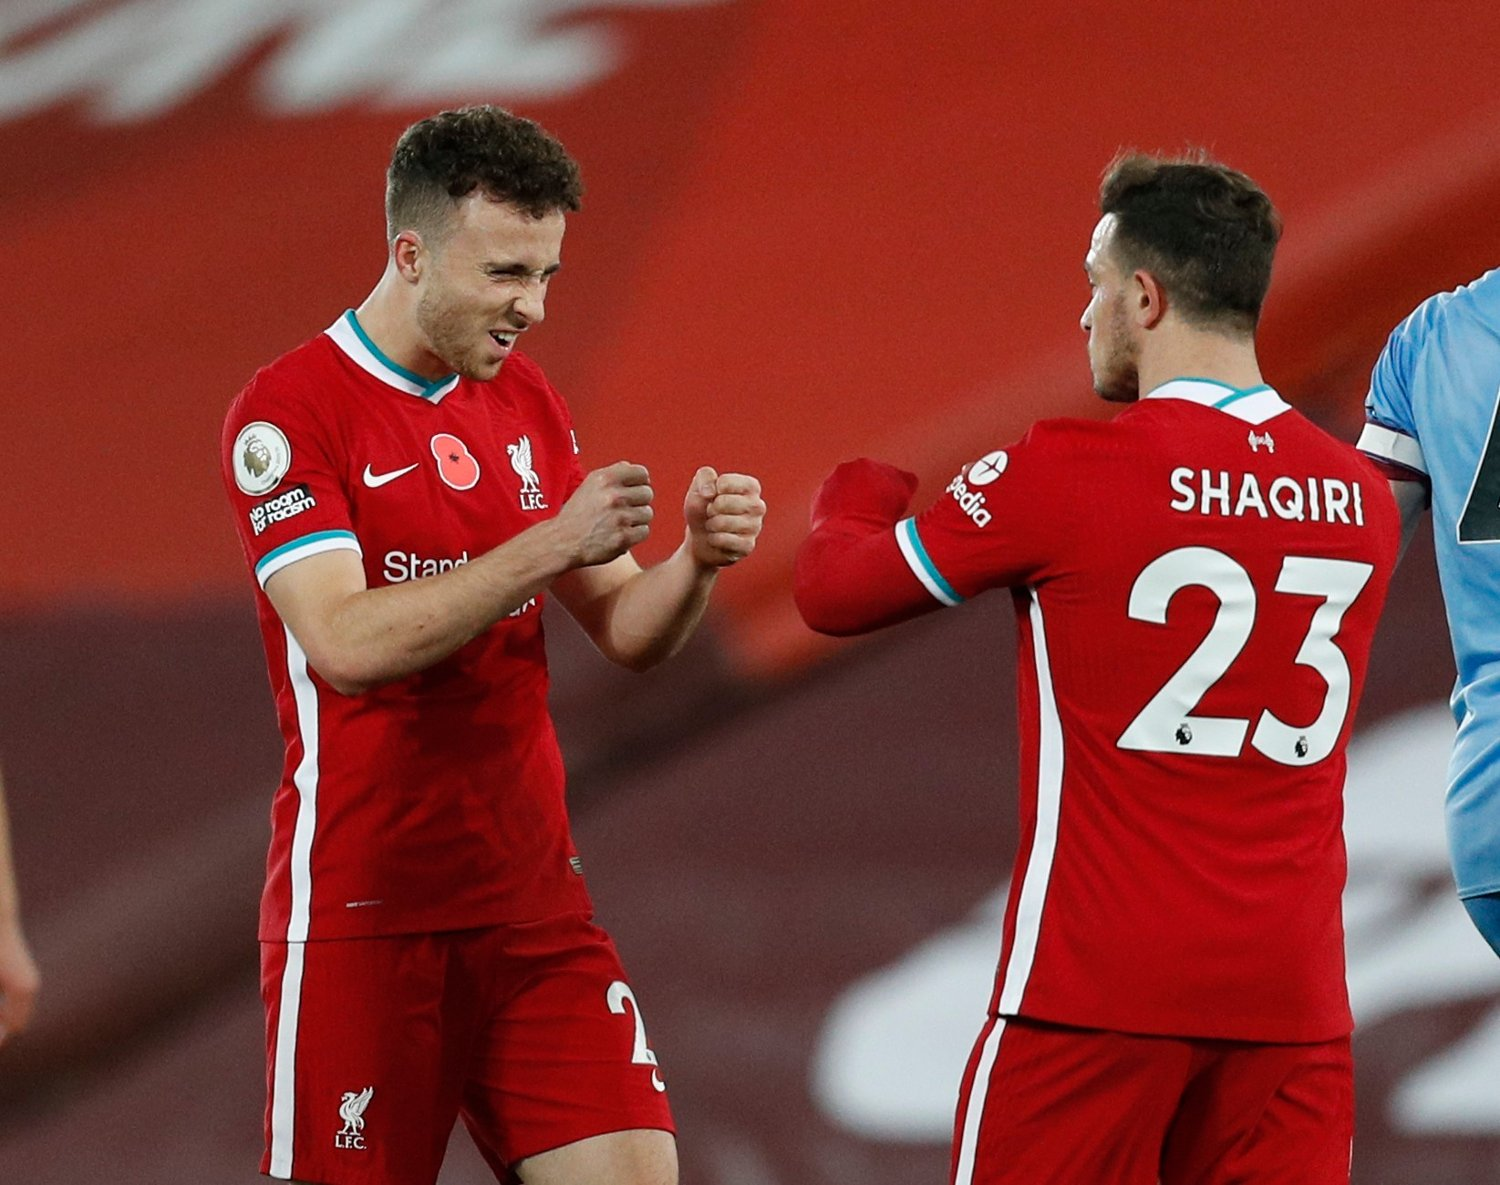 Diogo Jota of Liverpool celebrates with Xherdan Shaqiri of Liverpool during the Premier League match at Anfield, Liverpool. Picture date: 31st October 2020. Picture credit should read: Darren Staples/Sportimage via PA Images